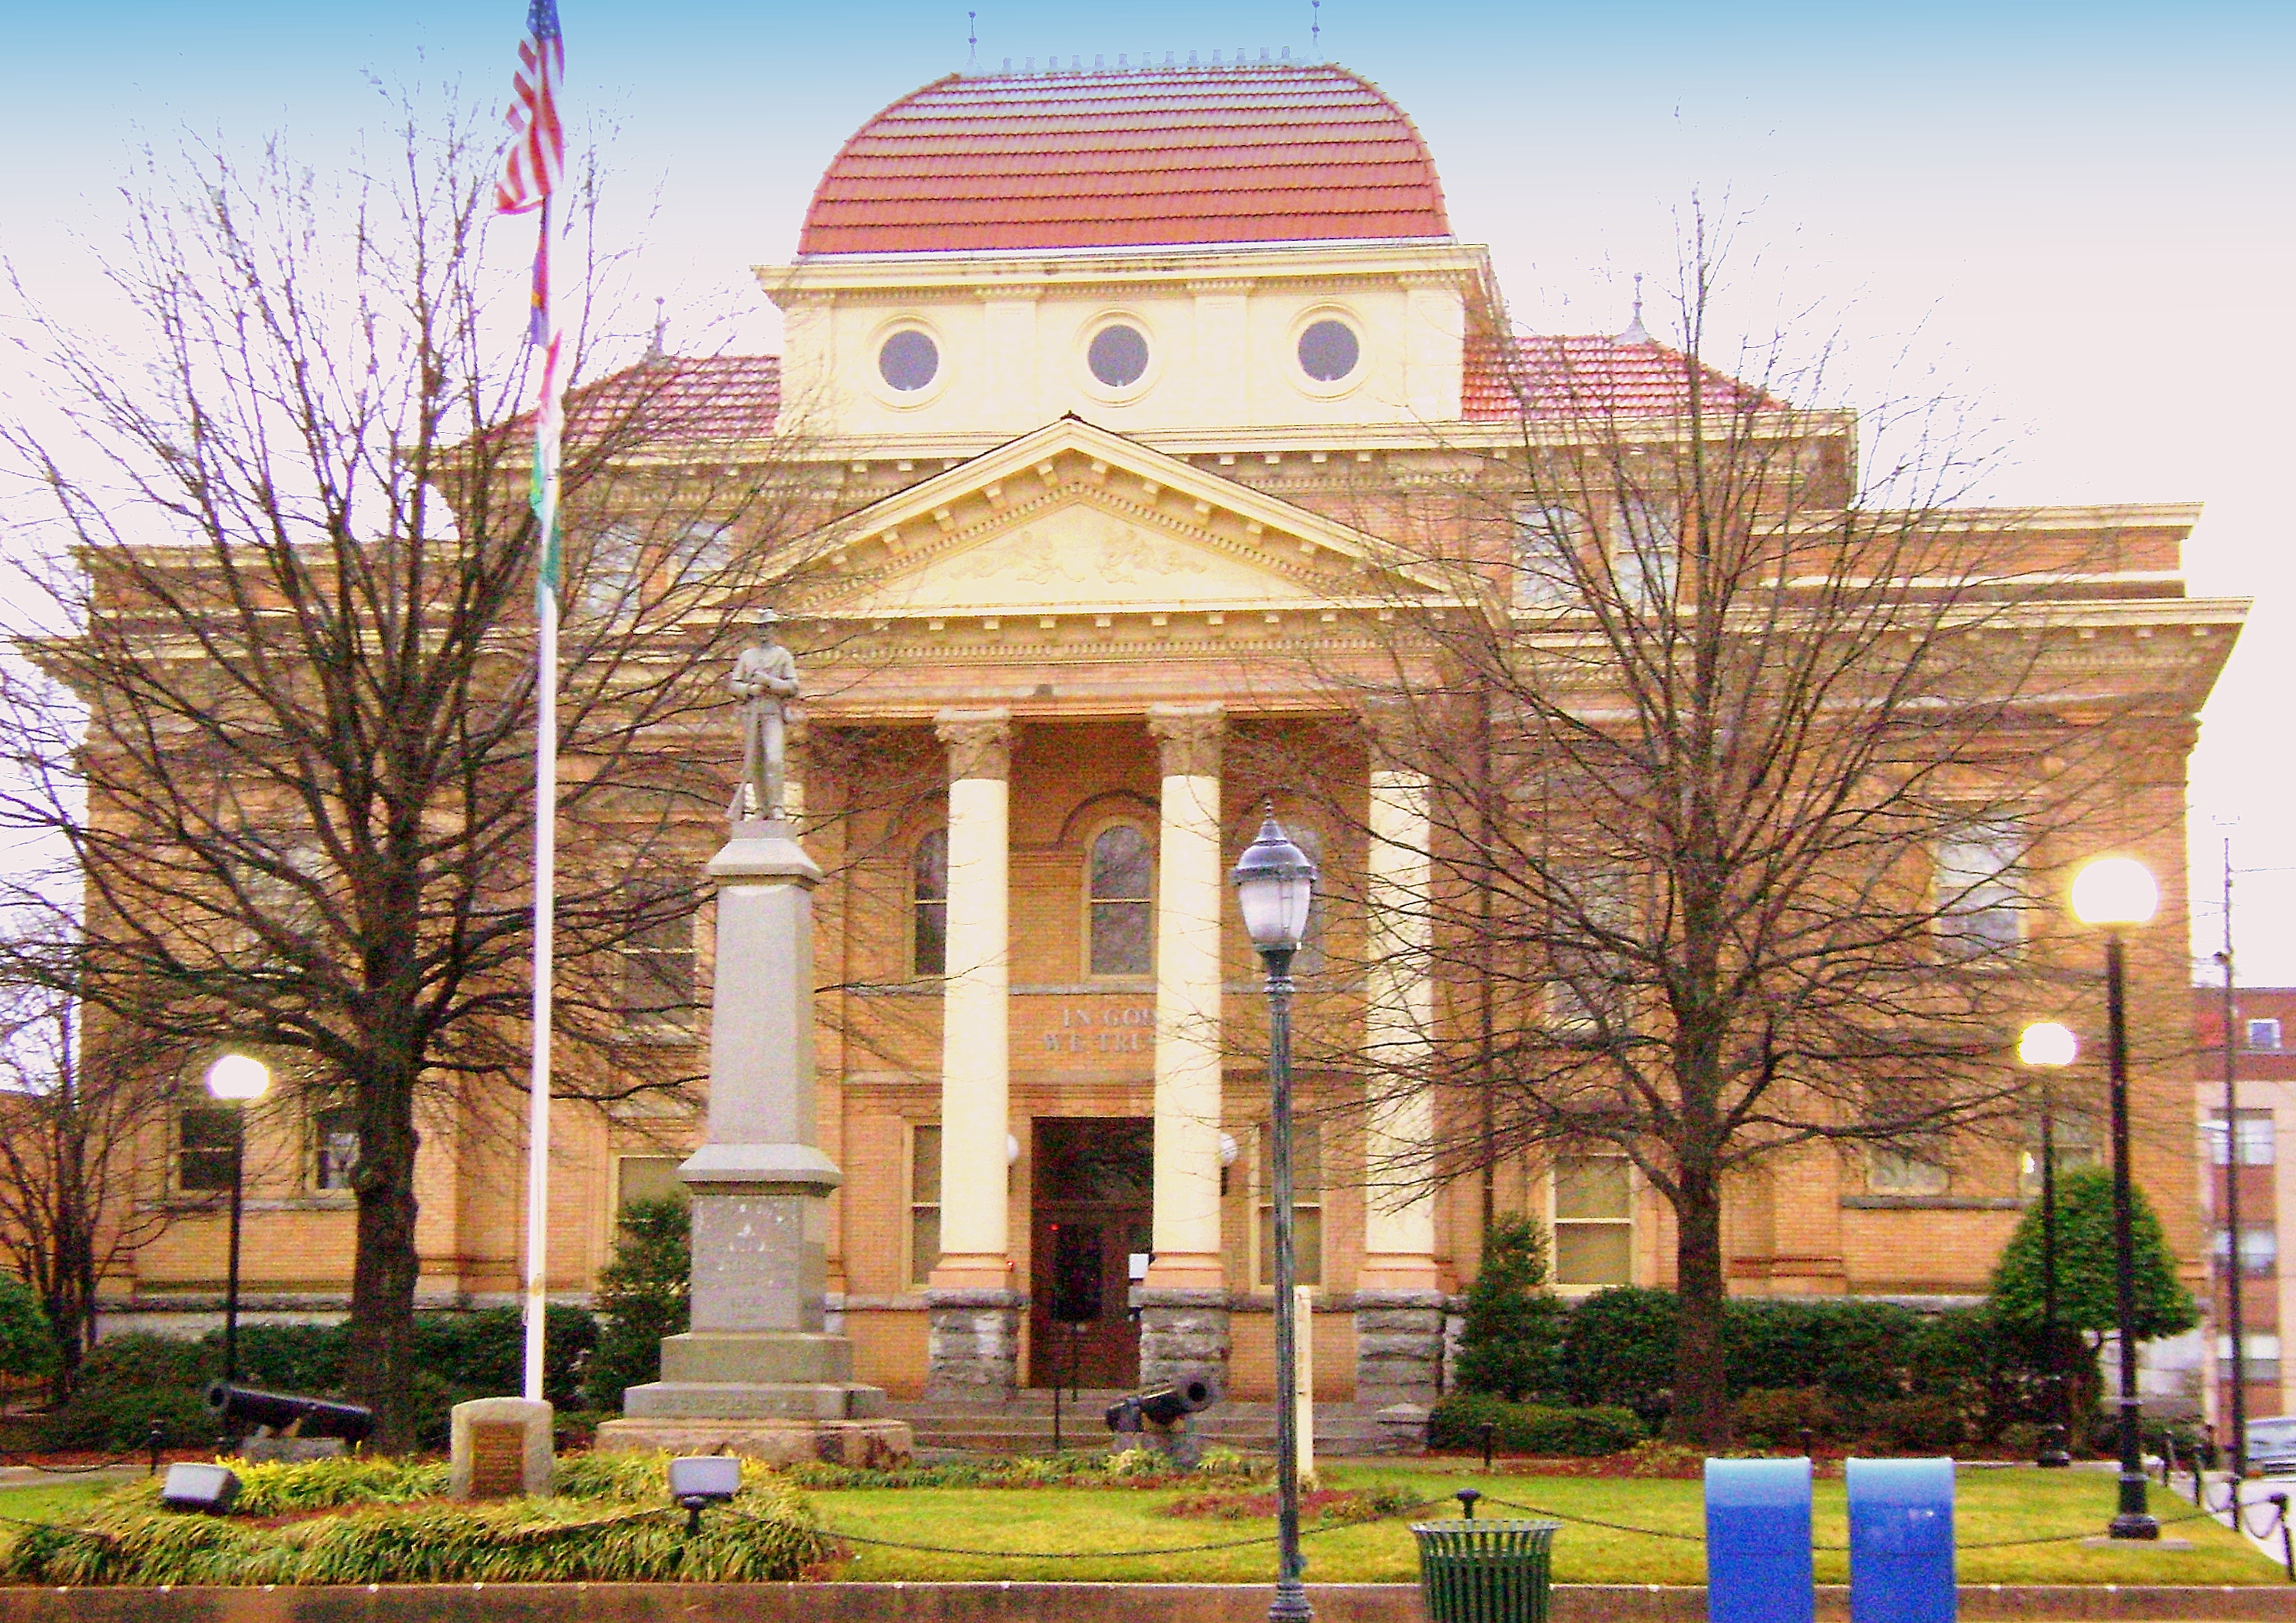 File:Iredell County Courthouse.jpg - Wikimedia Commonsbalance of iredell county